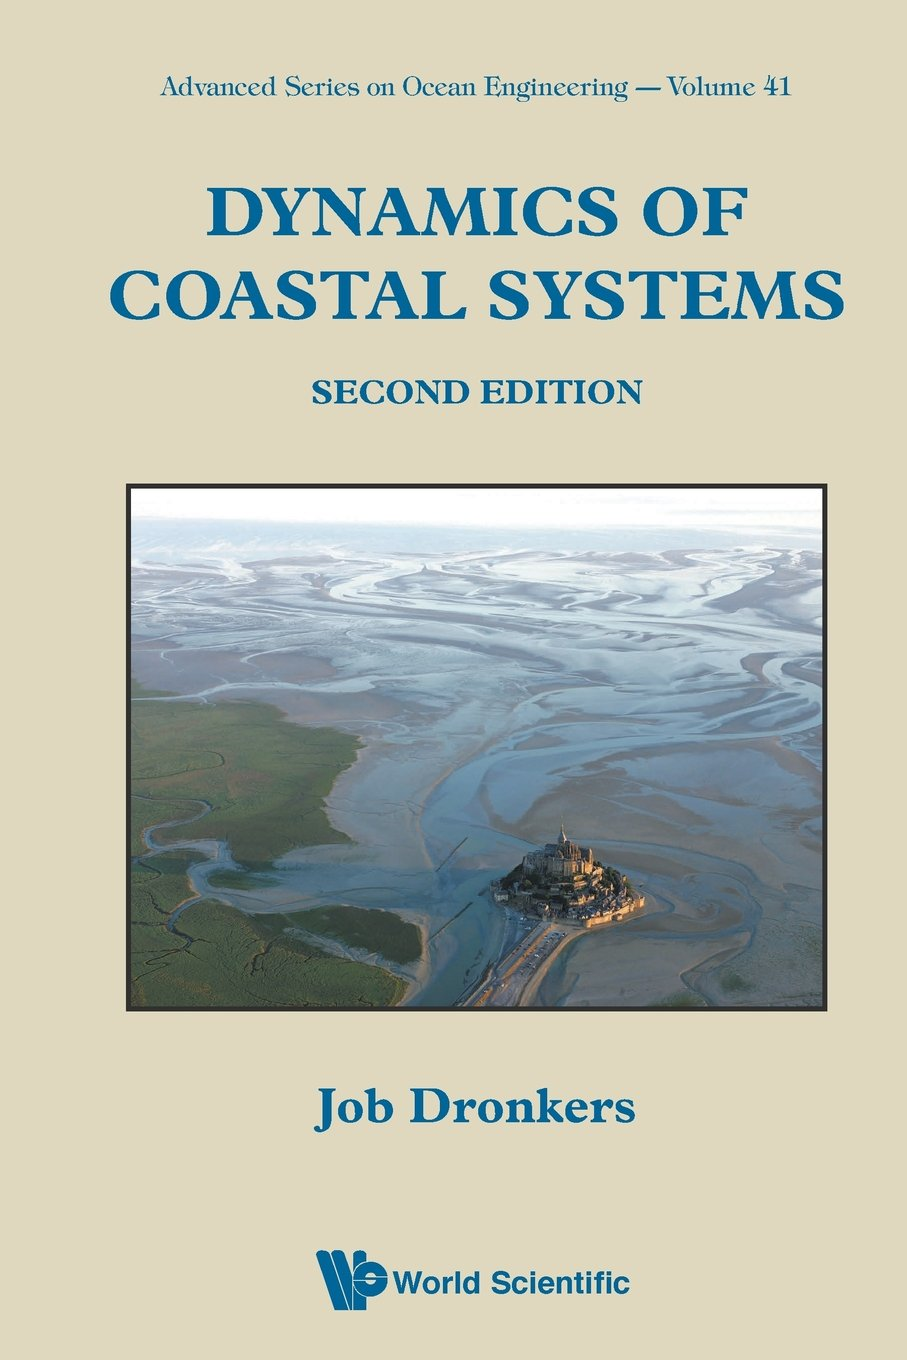 Dynamics Of Coastal Systems (Second Edition) (Advanced Series on Ocean Engineering) PDF